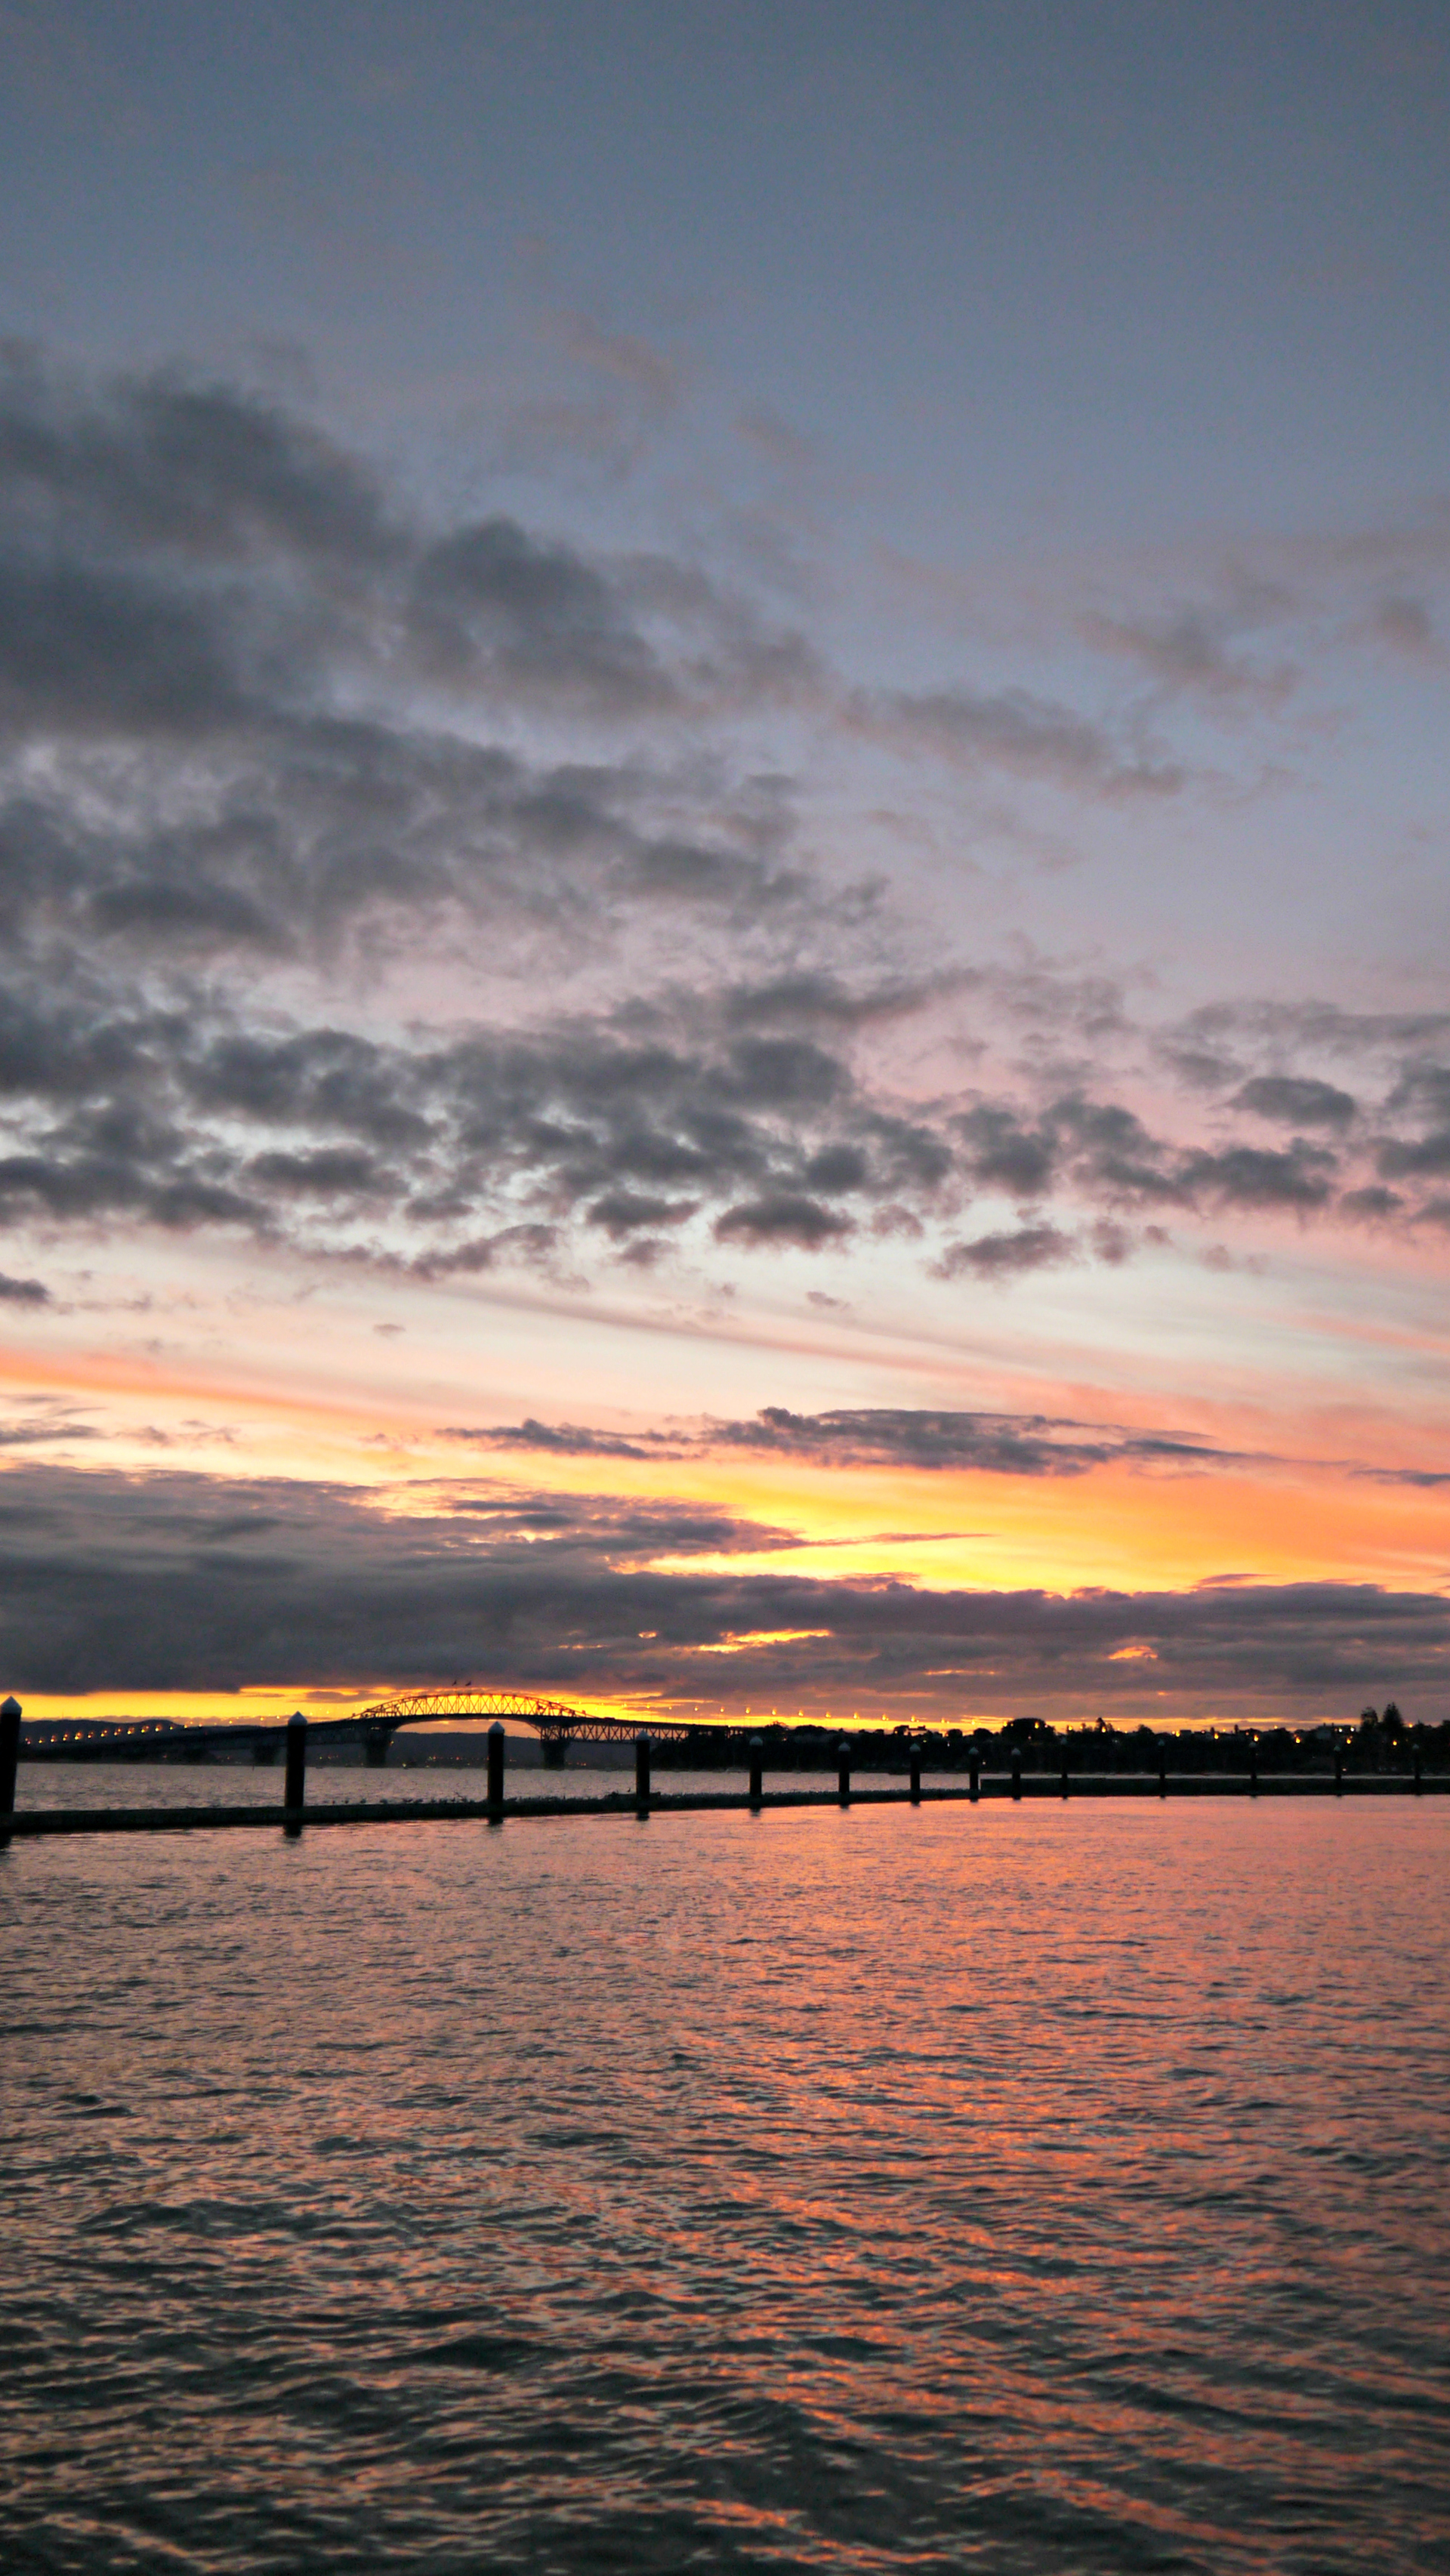 Sunset with Auckland Harbor Bridge in Distance. February 2015